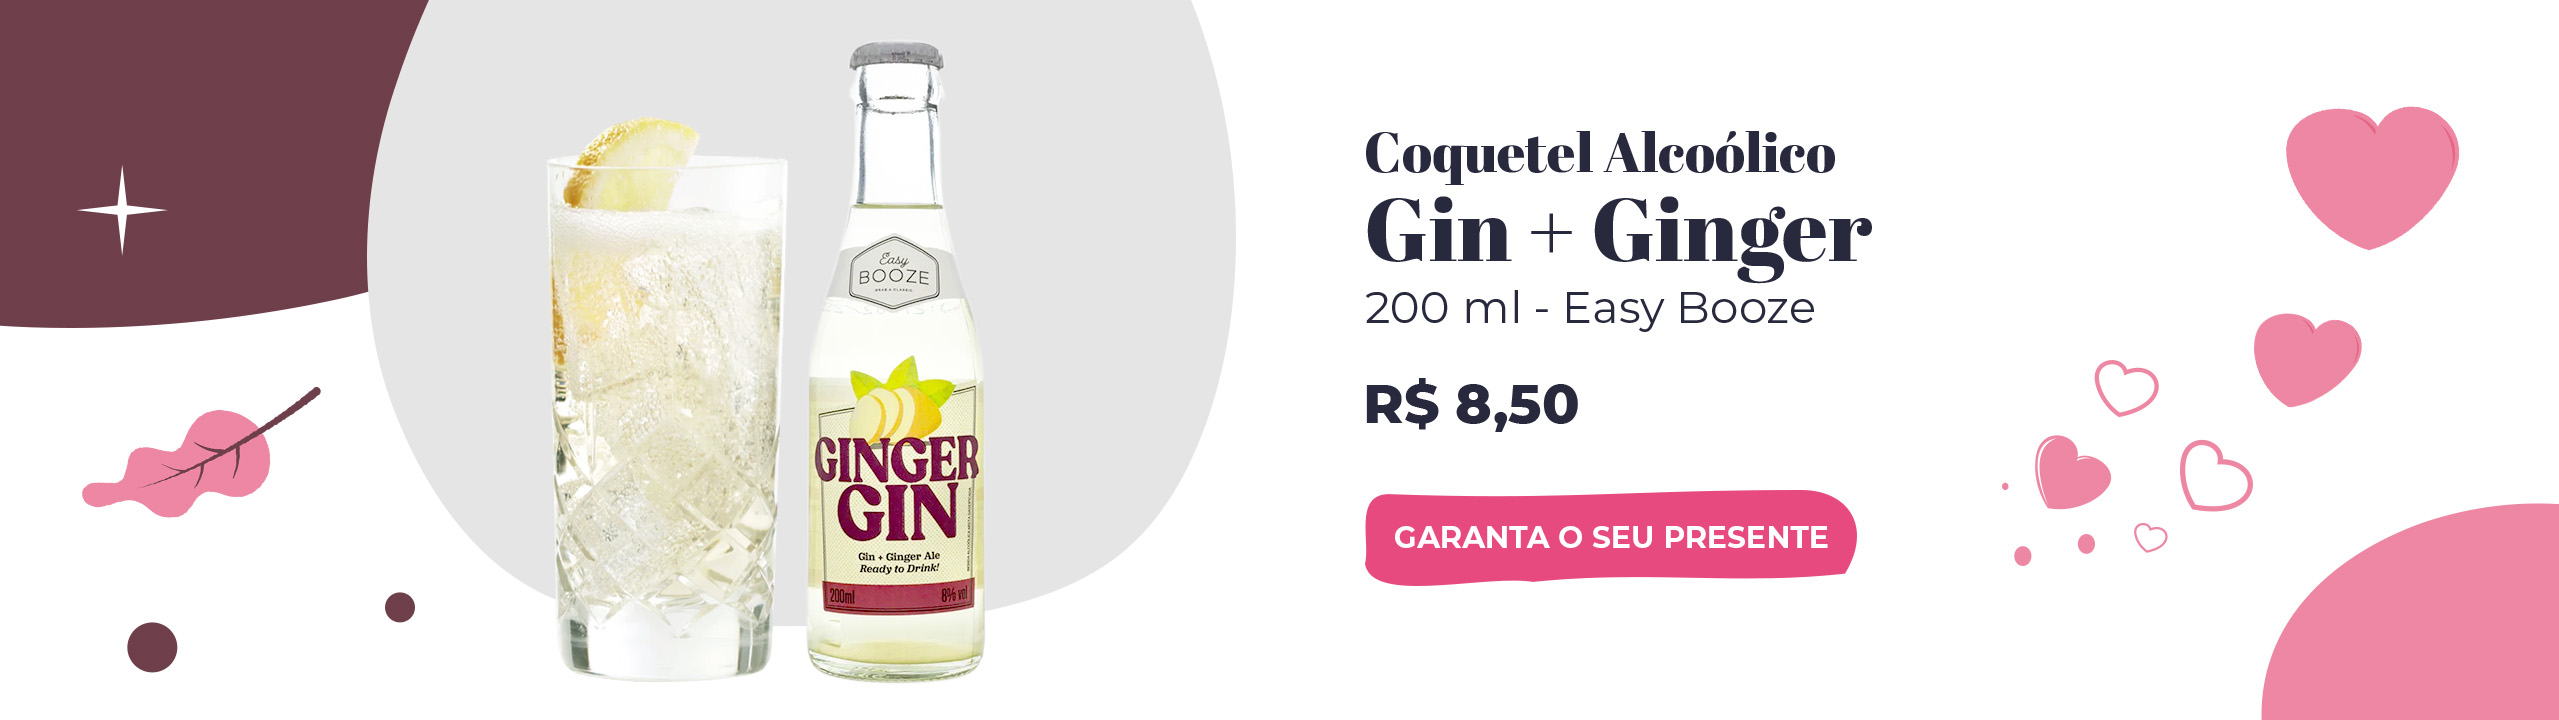 Coquetel Acoólico Eazy Booze 200ml - Gin + Ginger